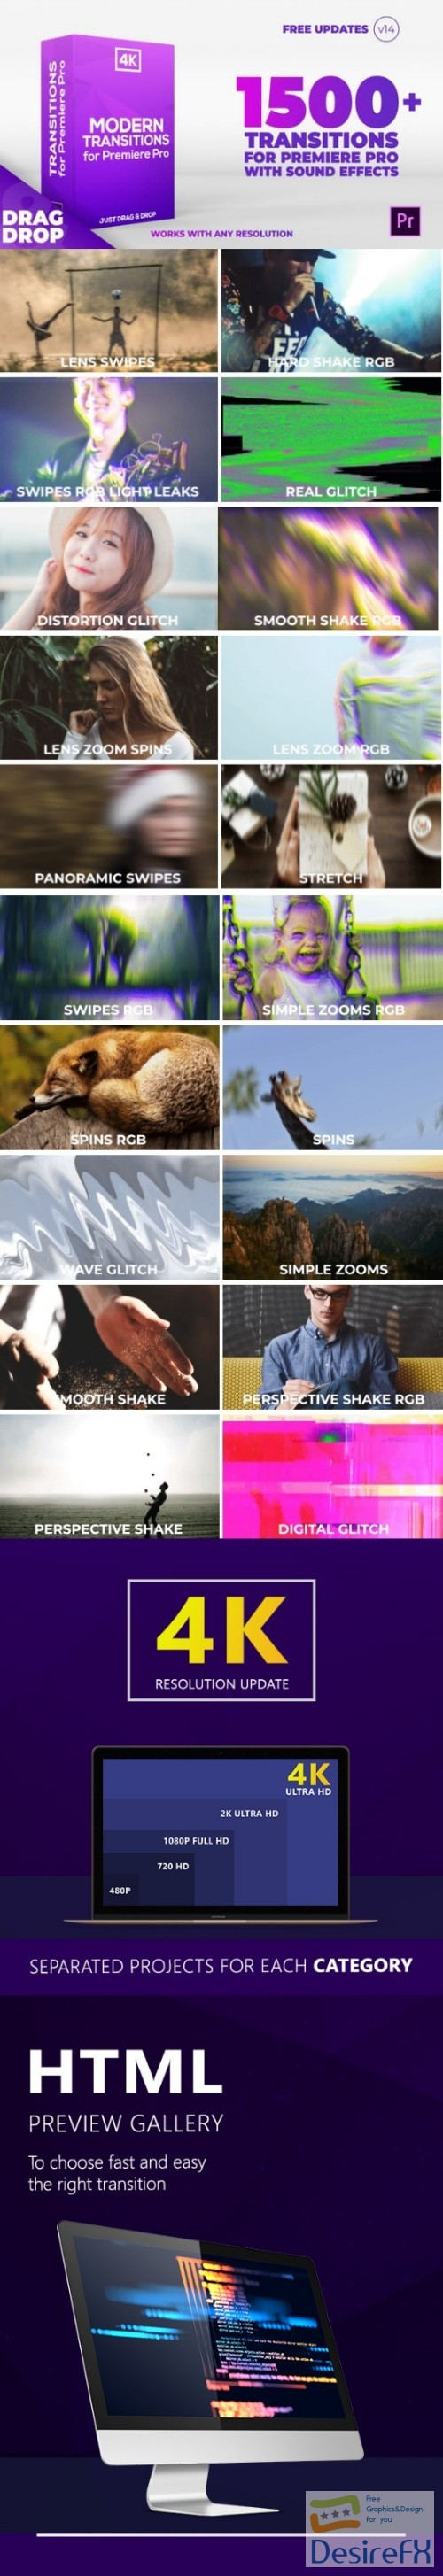 after-effects-projects - Videohive Modern Transitions | For Premiere PRO 21922312 - V14